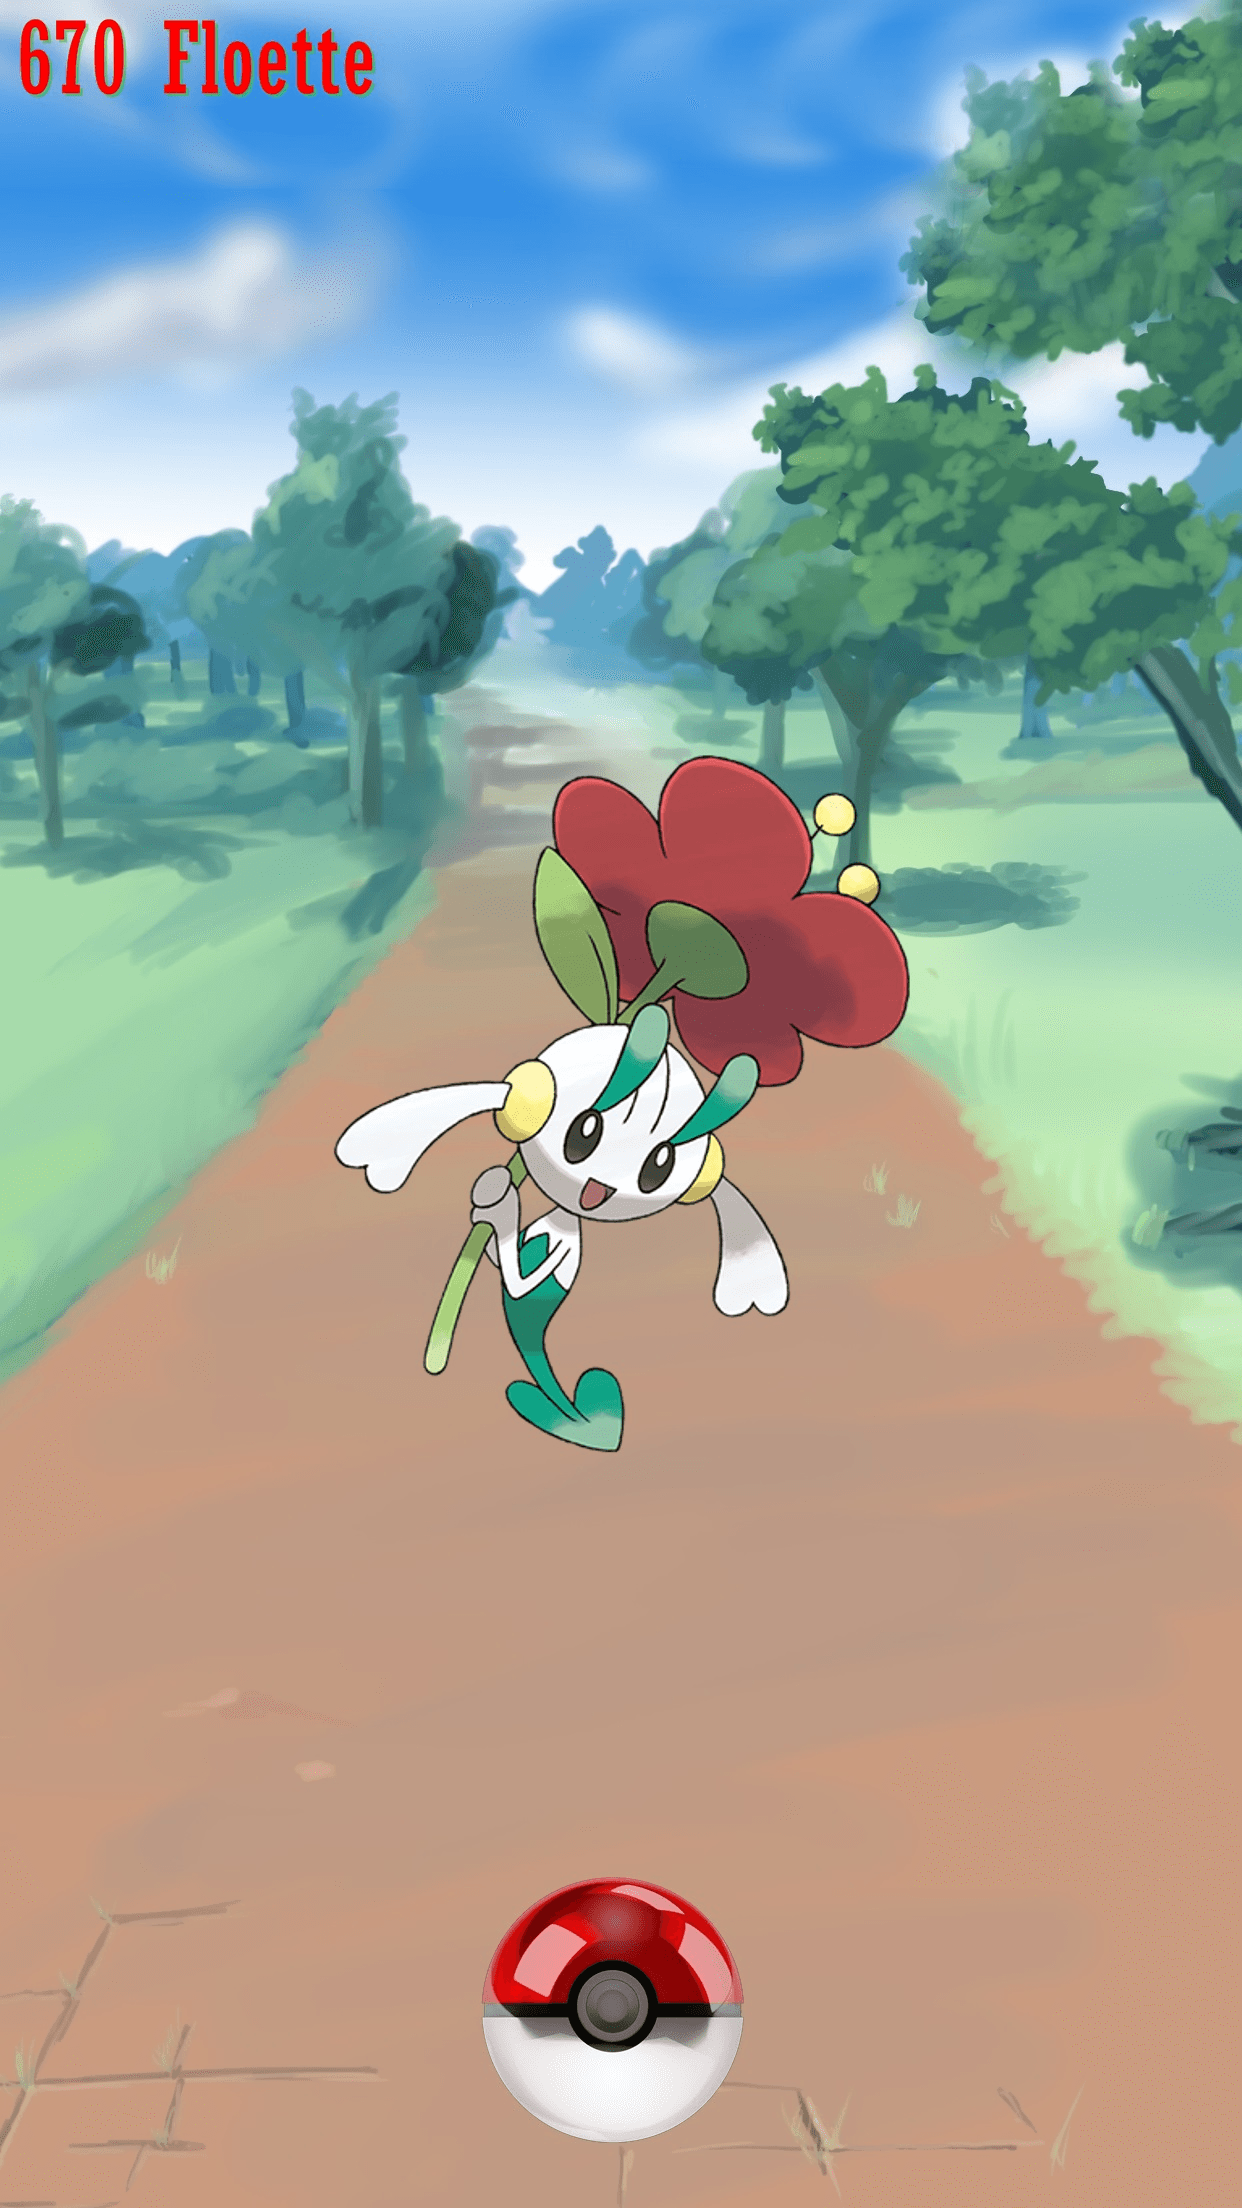 670 Street Pokeball Floette | Wallpaper